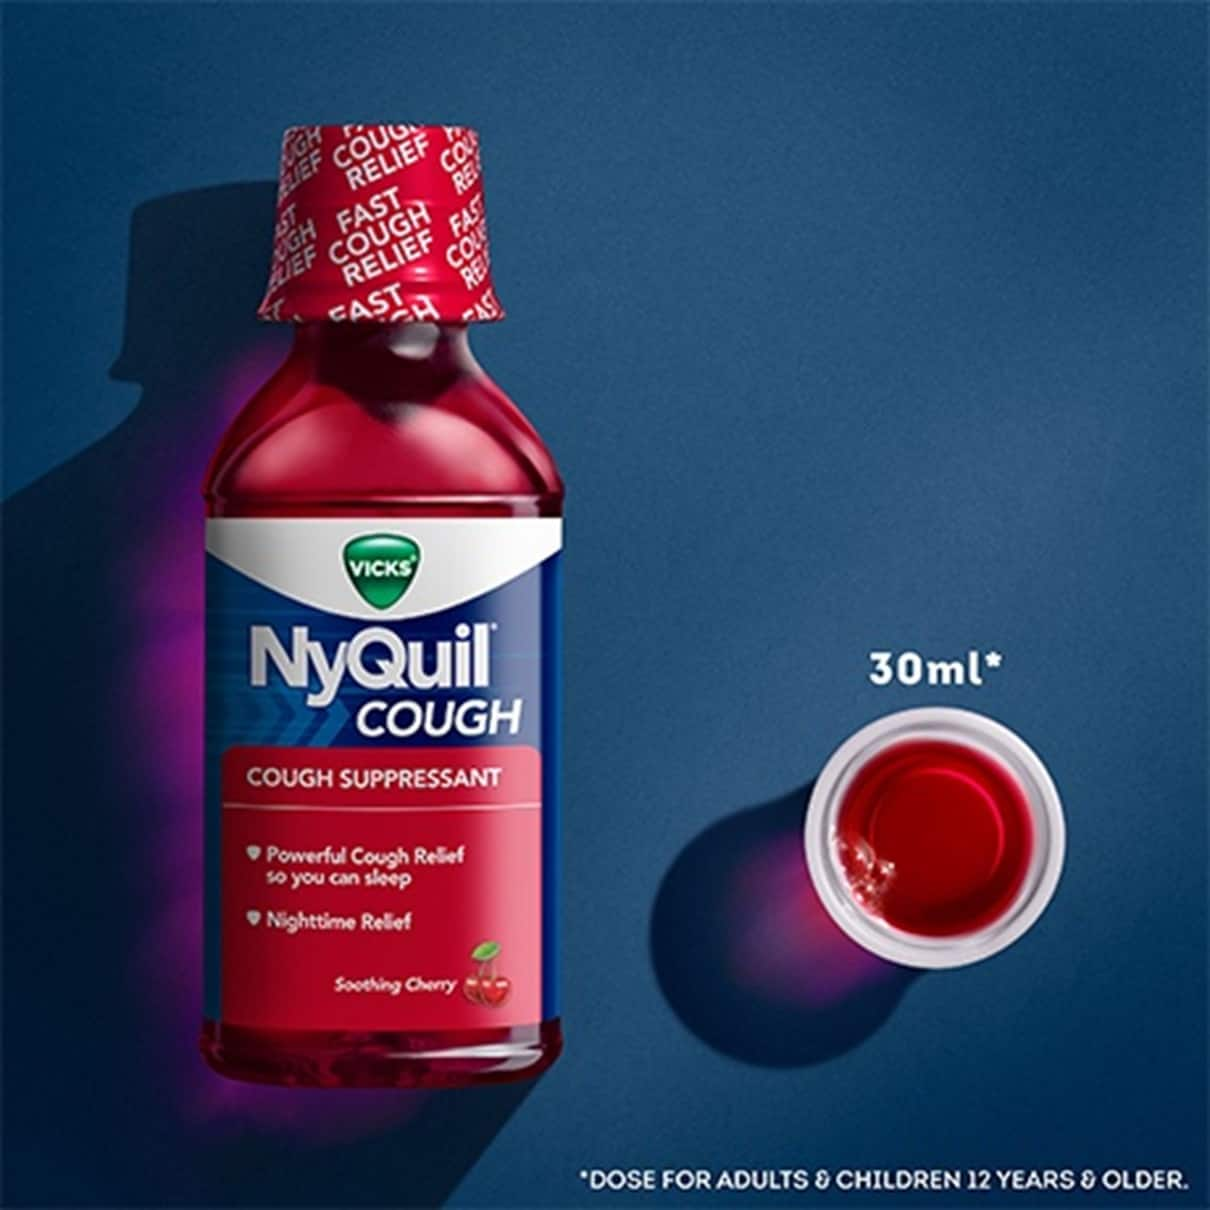 vicks nyquil cough suppressant